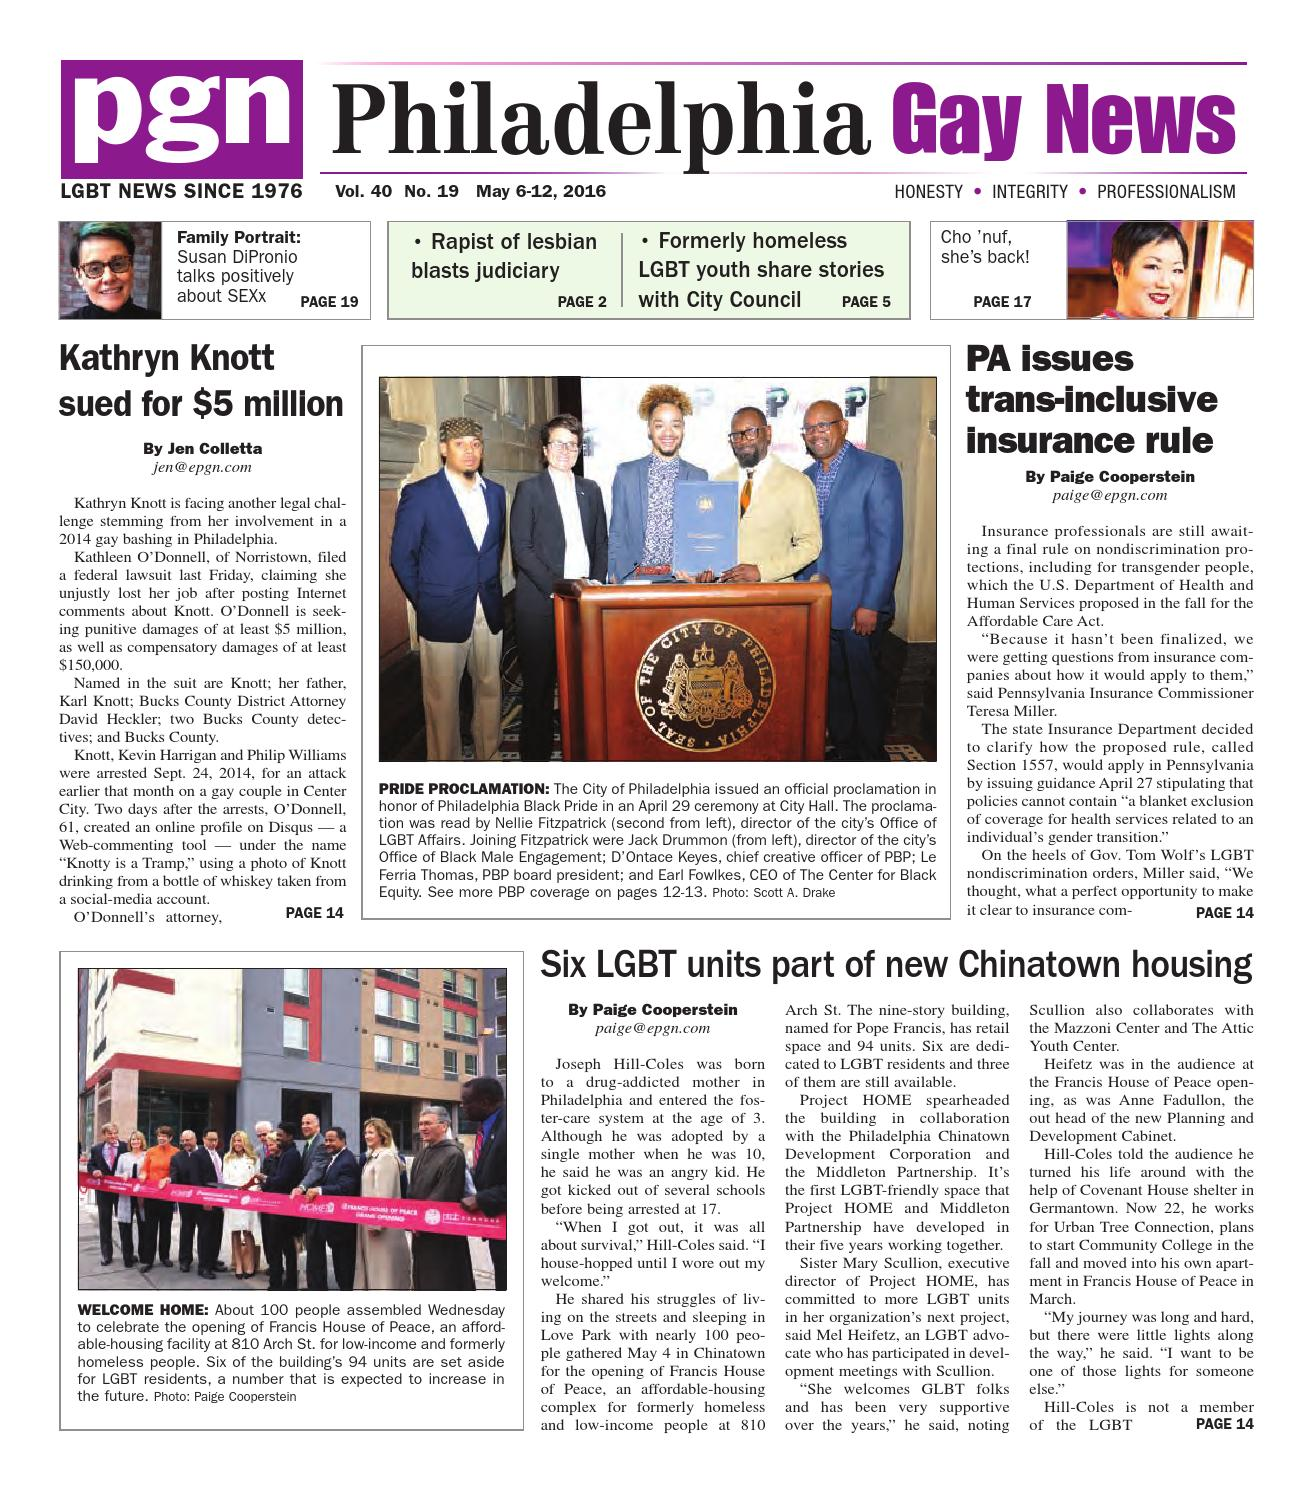 Pgn May 6 12 2016 By The Philadelphia Gay News Issuu Manzone Amadeus Navy M